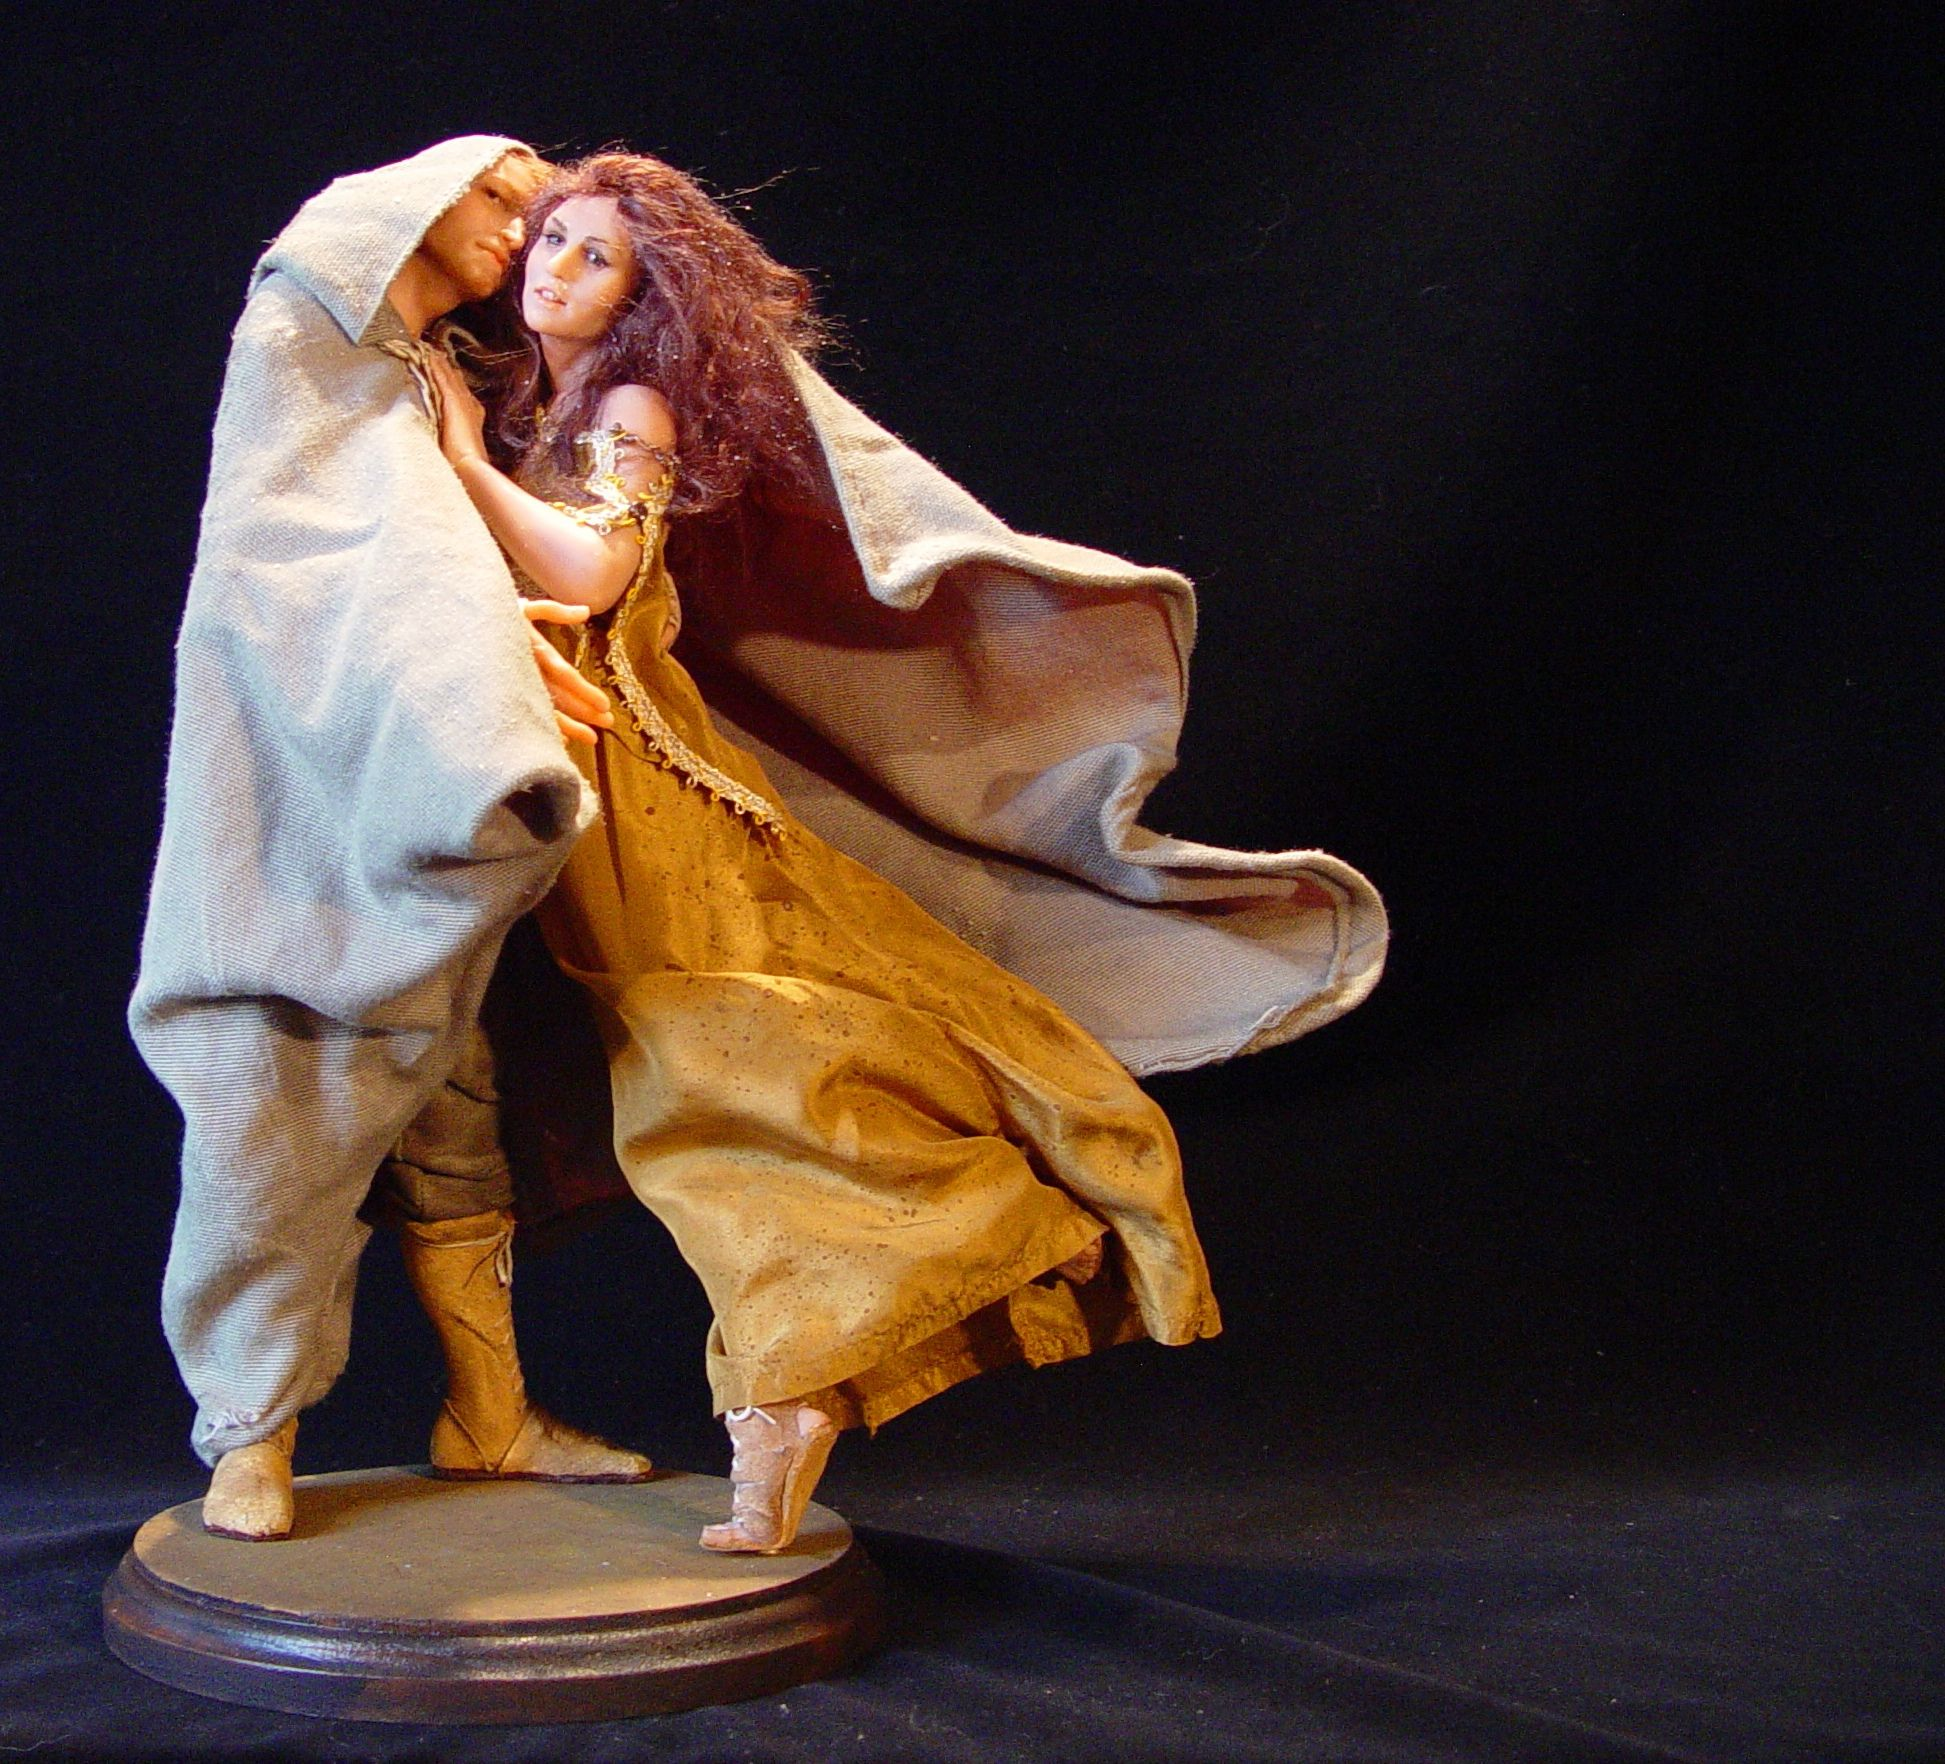 Human Figures in Clay by Mark Dennis OOAK Polymer Clay